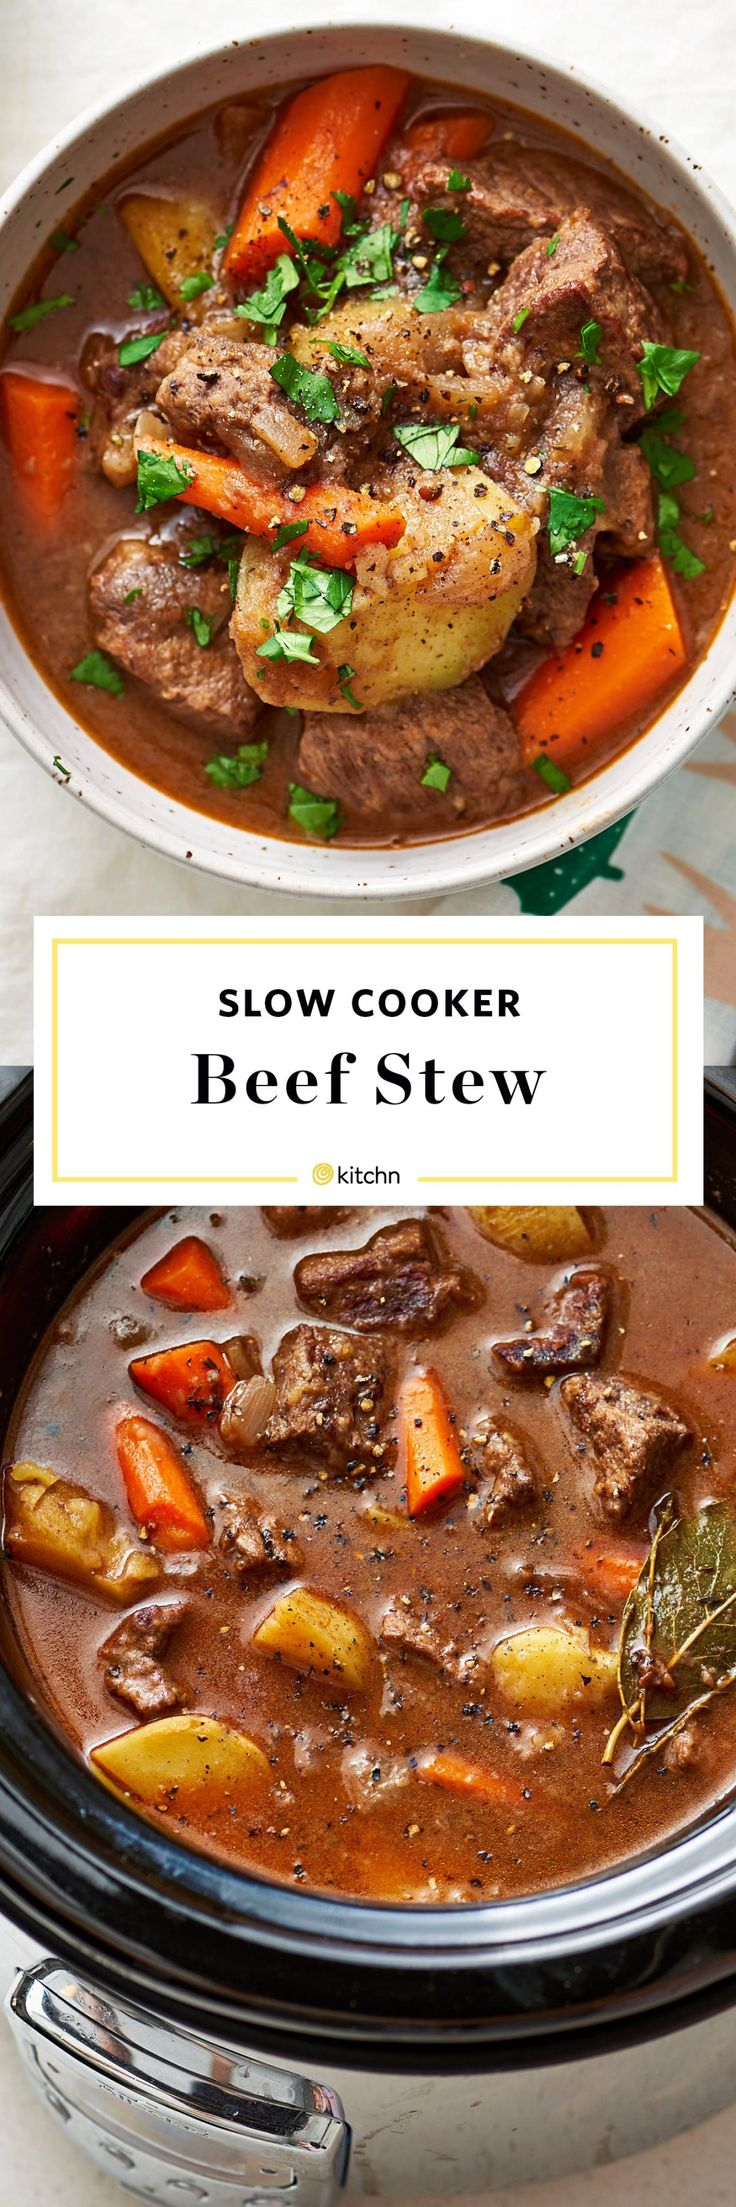 How To Make the BEST Beef Stew In the Crockpot. Need recipes and ideas for meals and dinners to make in slow cookers or crock pots? This is one of the most classic crowd pleasers that all families love. Easy, healthy, and wholesome, made with bottom round beef roast, flour, onion, dry red wine, carrots, potatoes, bay leaves, beef broth, tomato paste. Comfort food like this is perfect for cold weather cooking.